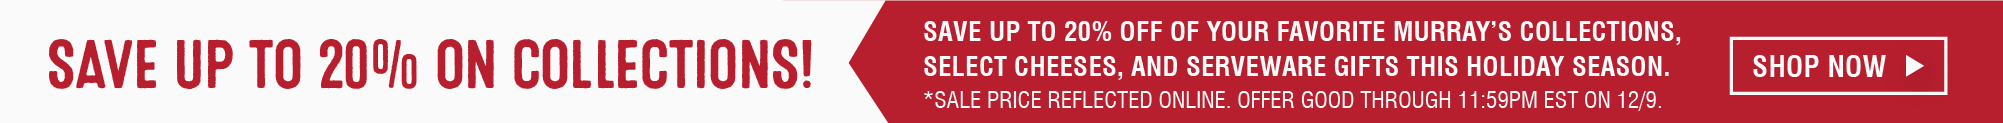 Save Up To 20% On Collections!